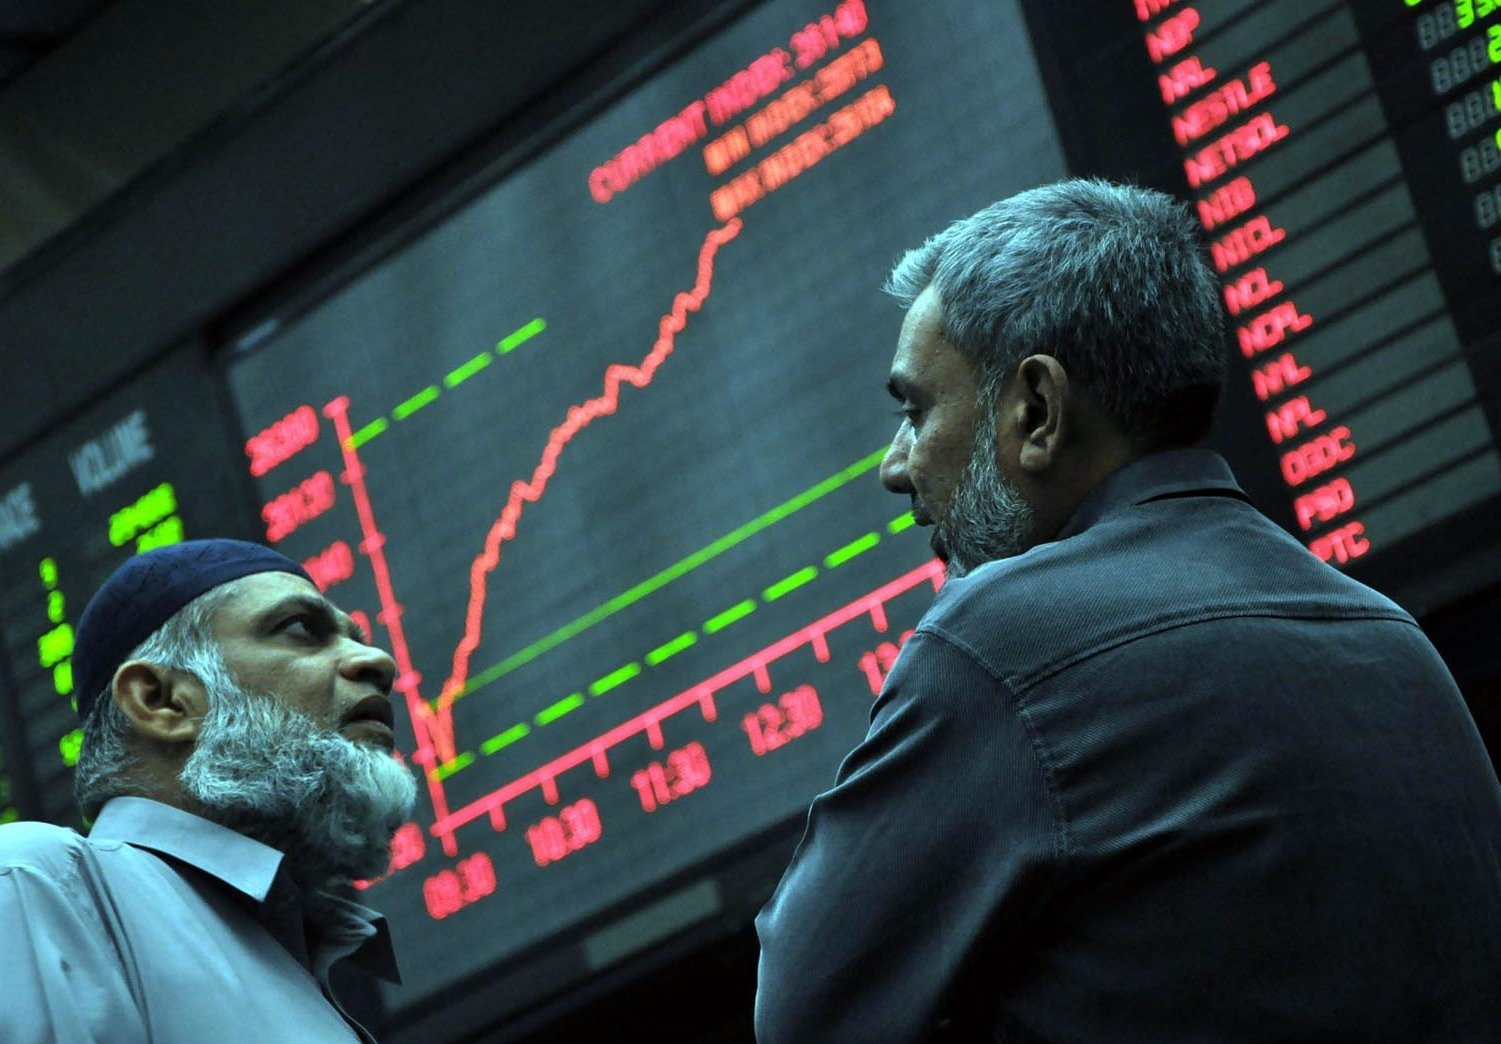 karachi-stock-exchange-inp-2-2-2-2-2-3-2